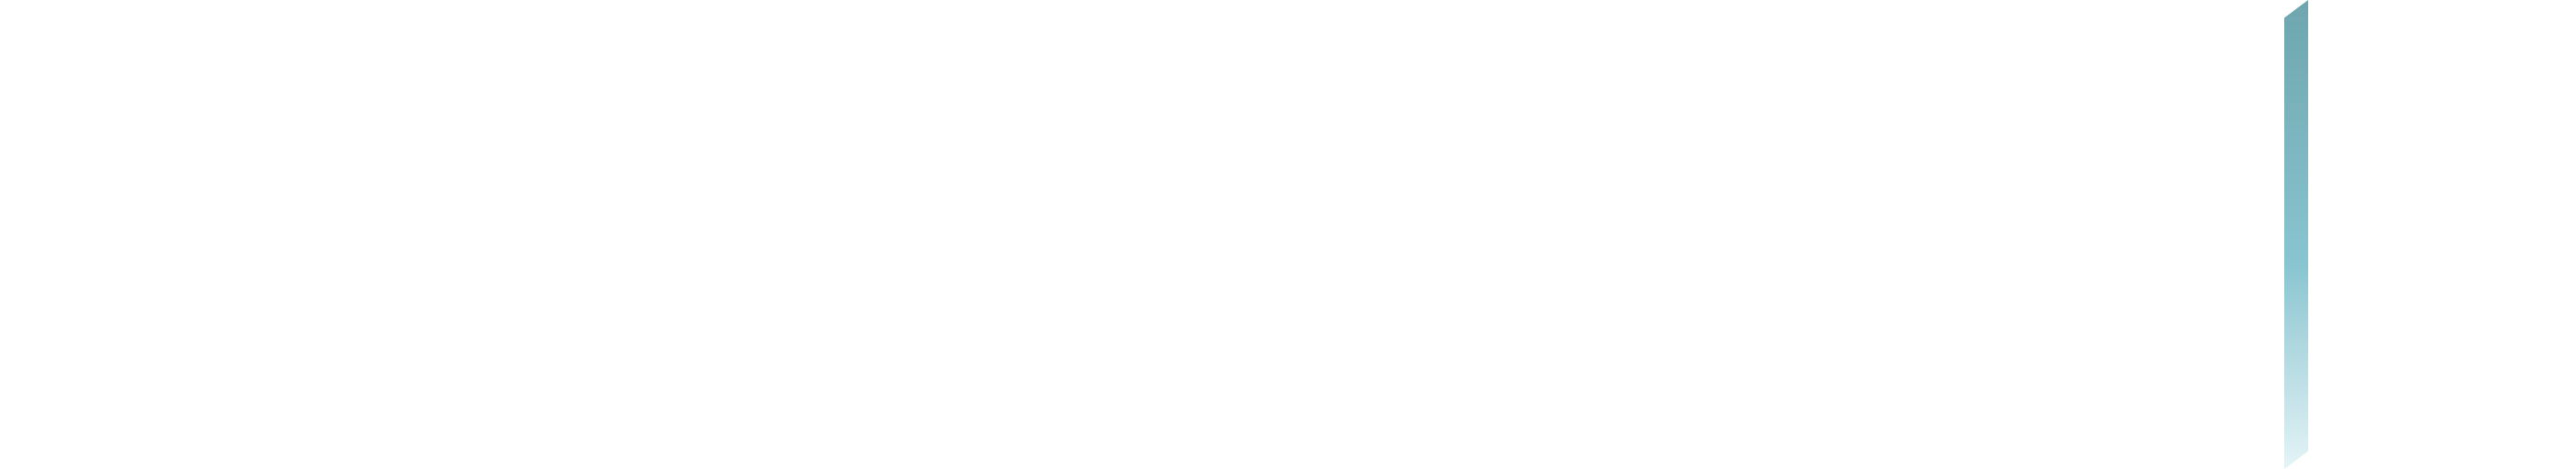 Titanfall 2 logo png. How to earn credits